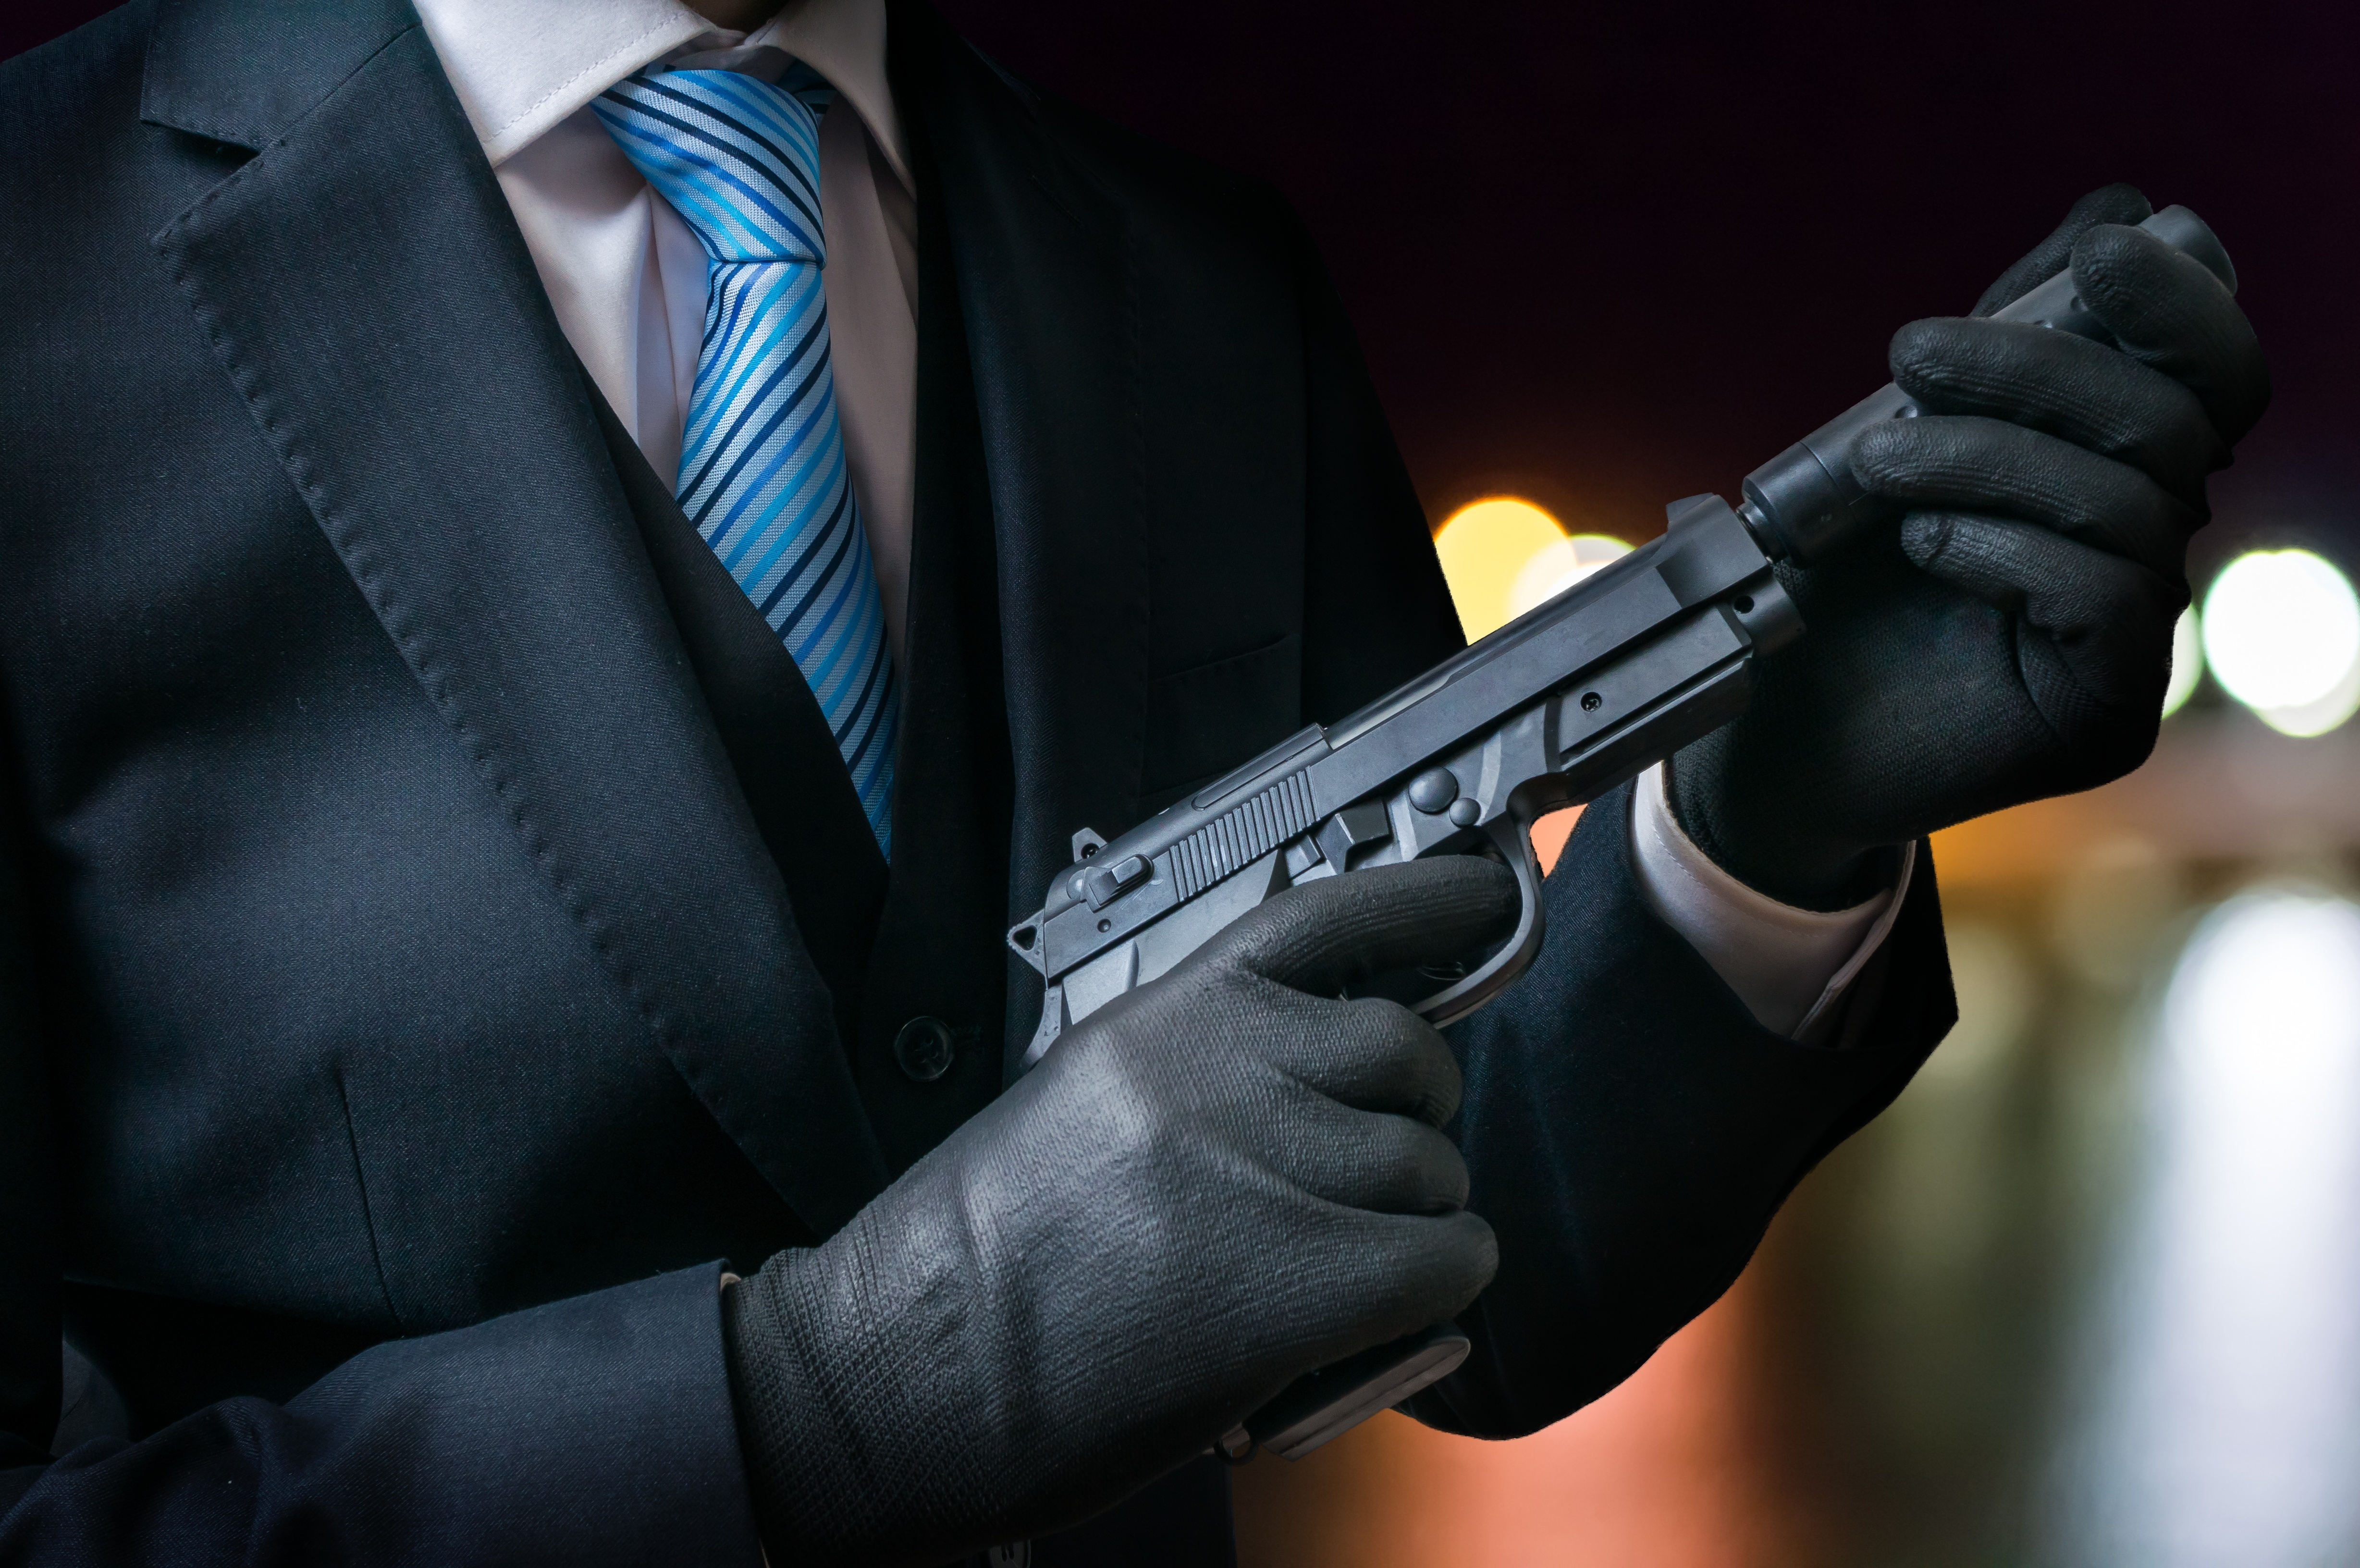 Killer holds gun with silencer in hands at night.